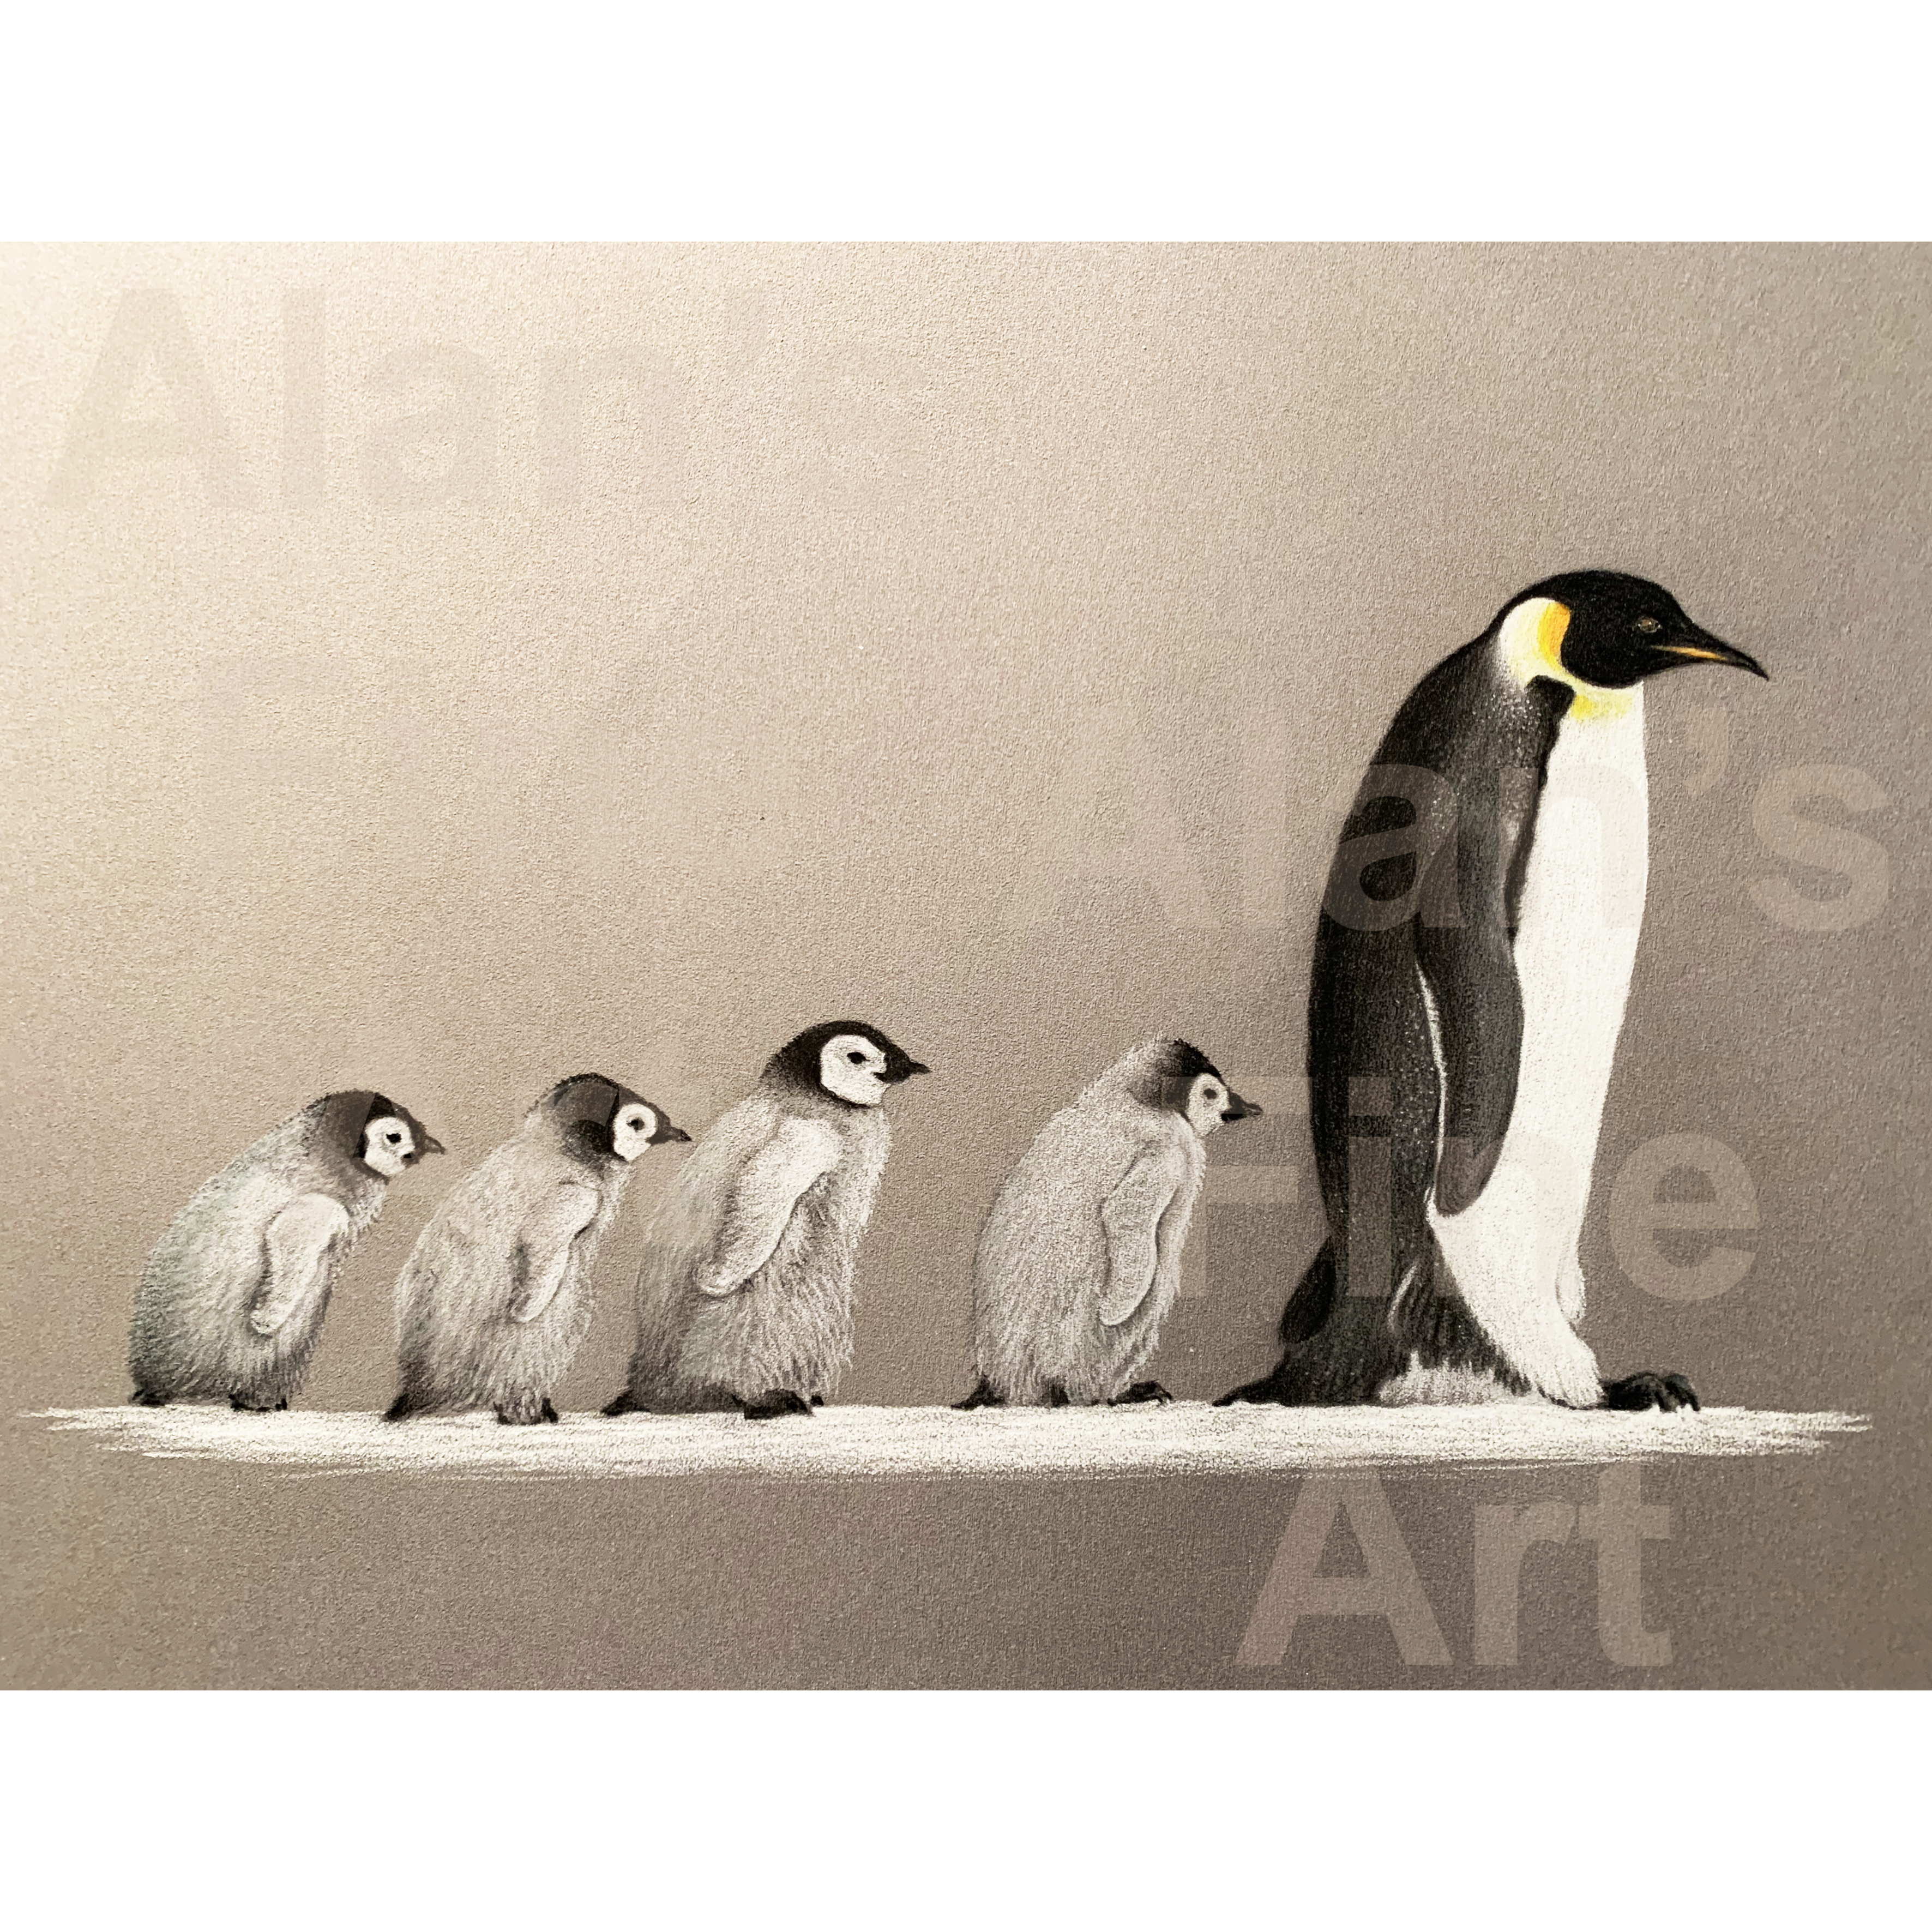 600 penguins iPhone IMG_0602 150mm square with watermarks